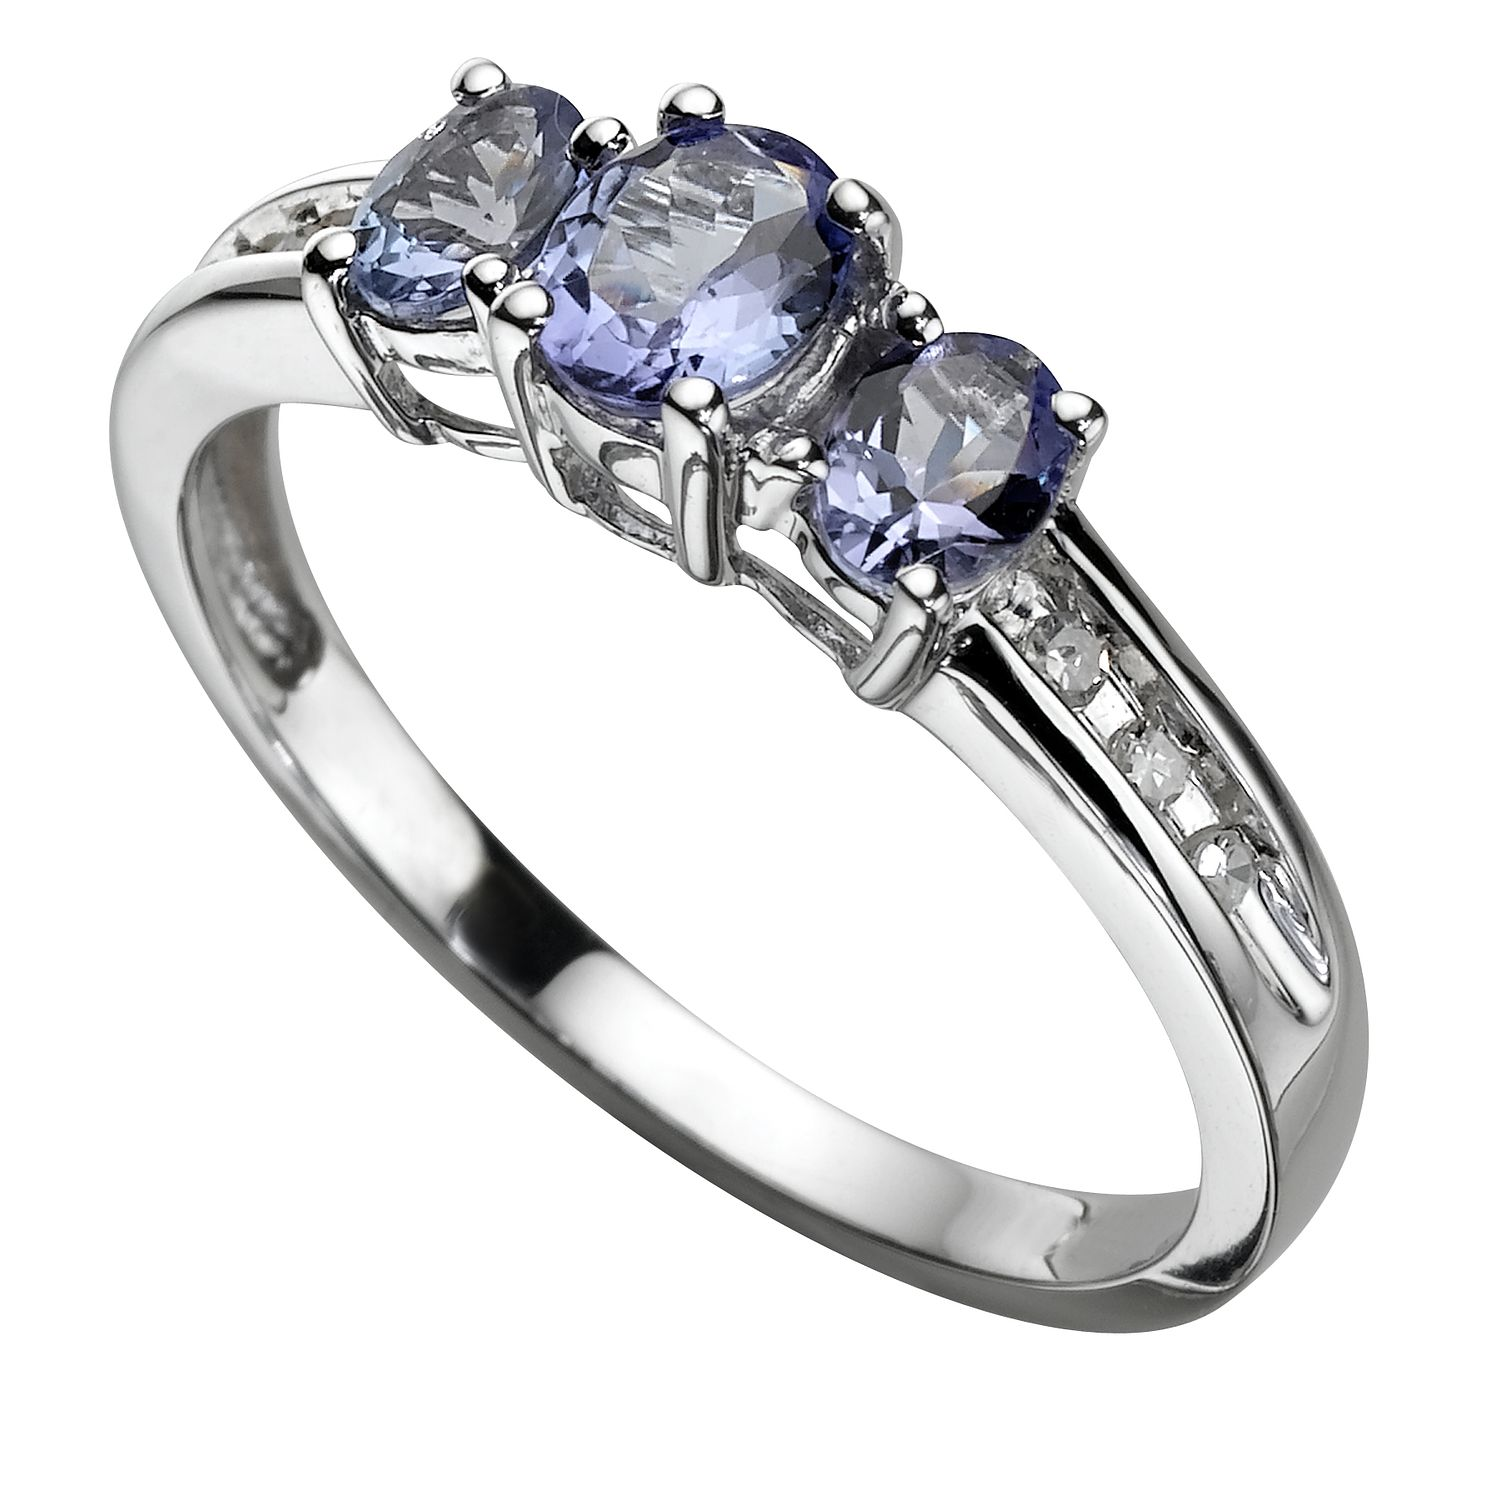 engagement cut il eidelprecious this gold blue rings listing wedding item rose tanzanite like by ring cushion lavender